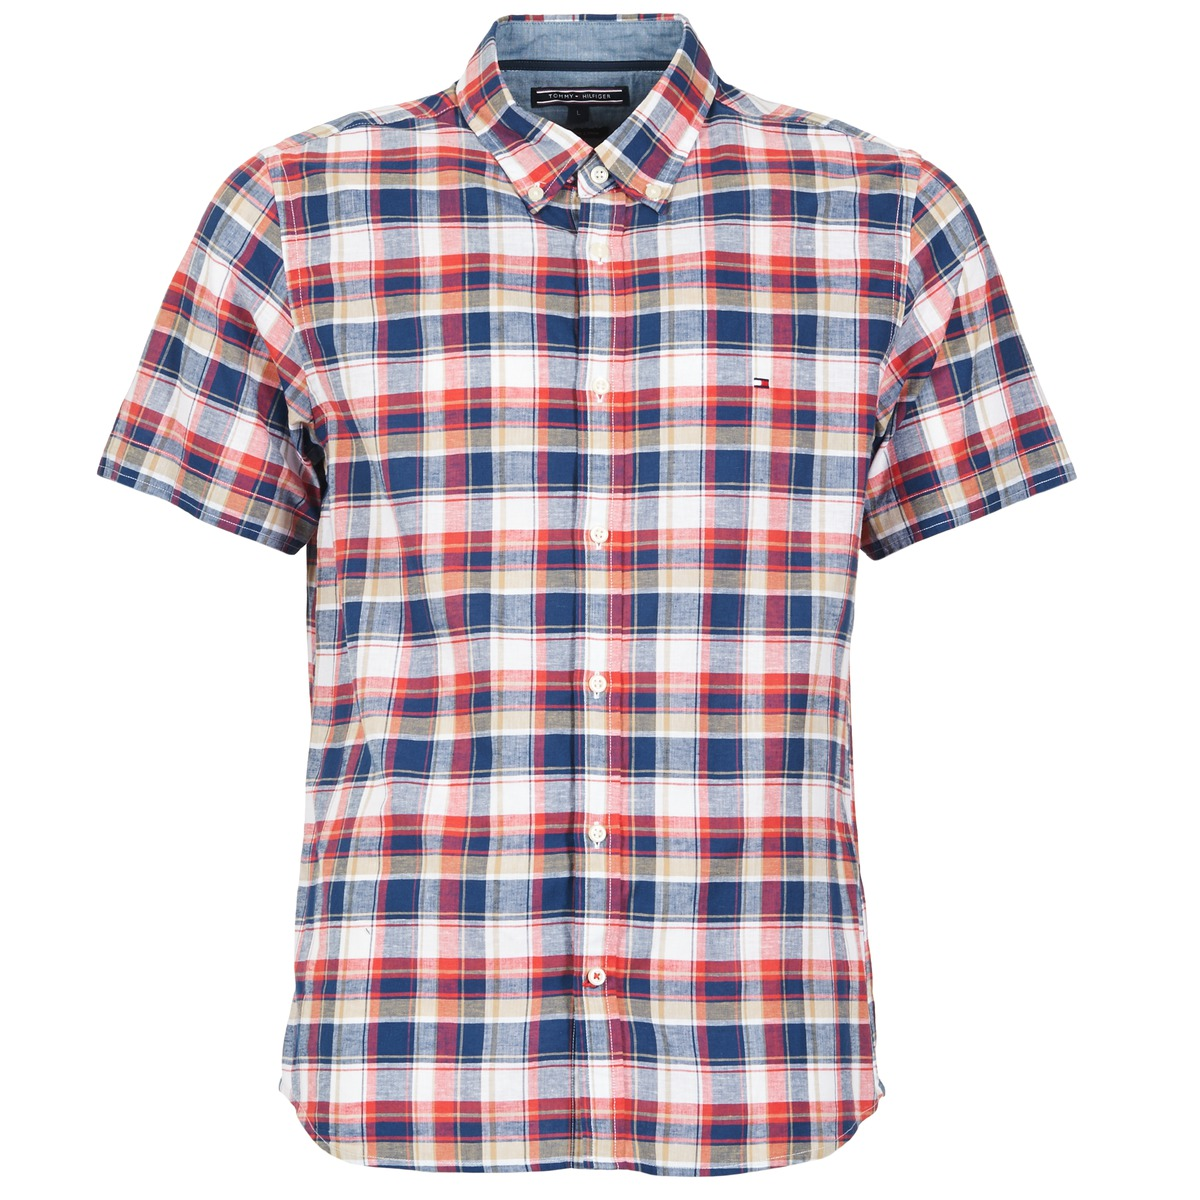 Tommy Hilfiger FRENCH CHK Marine / Rouge